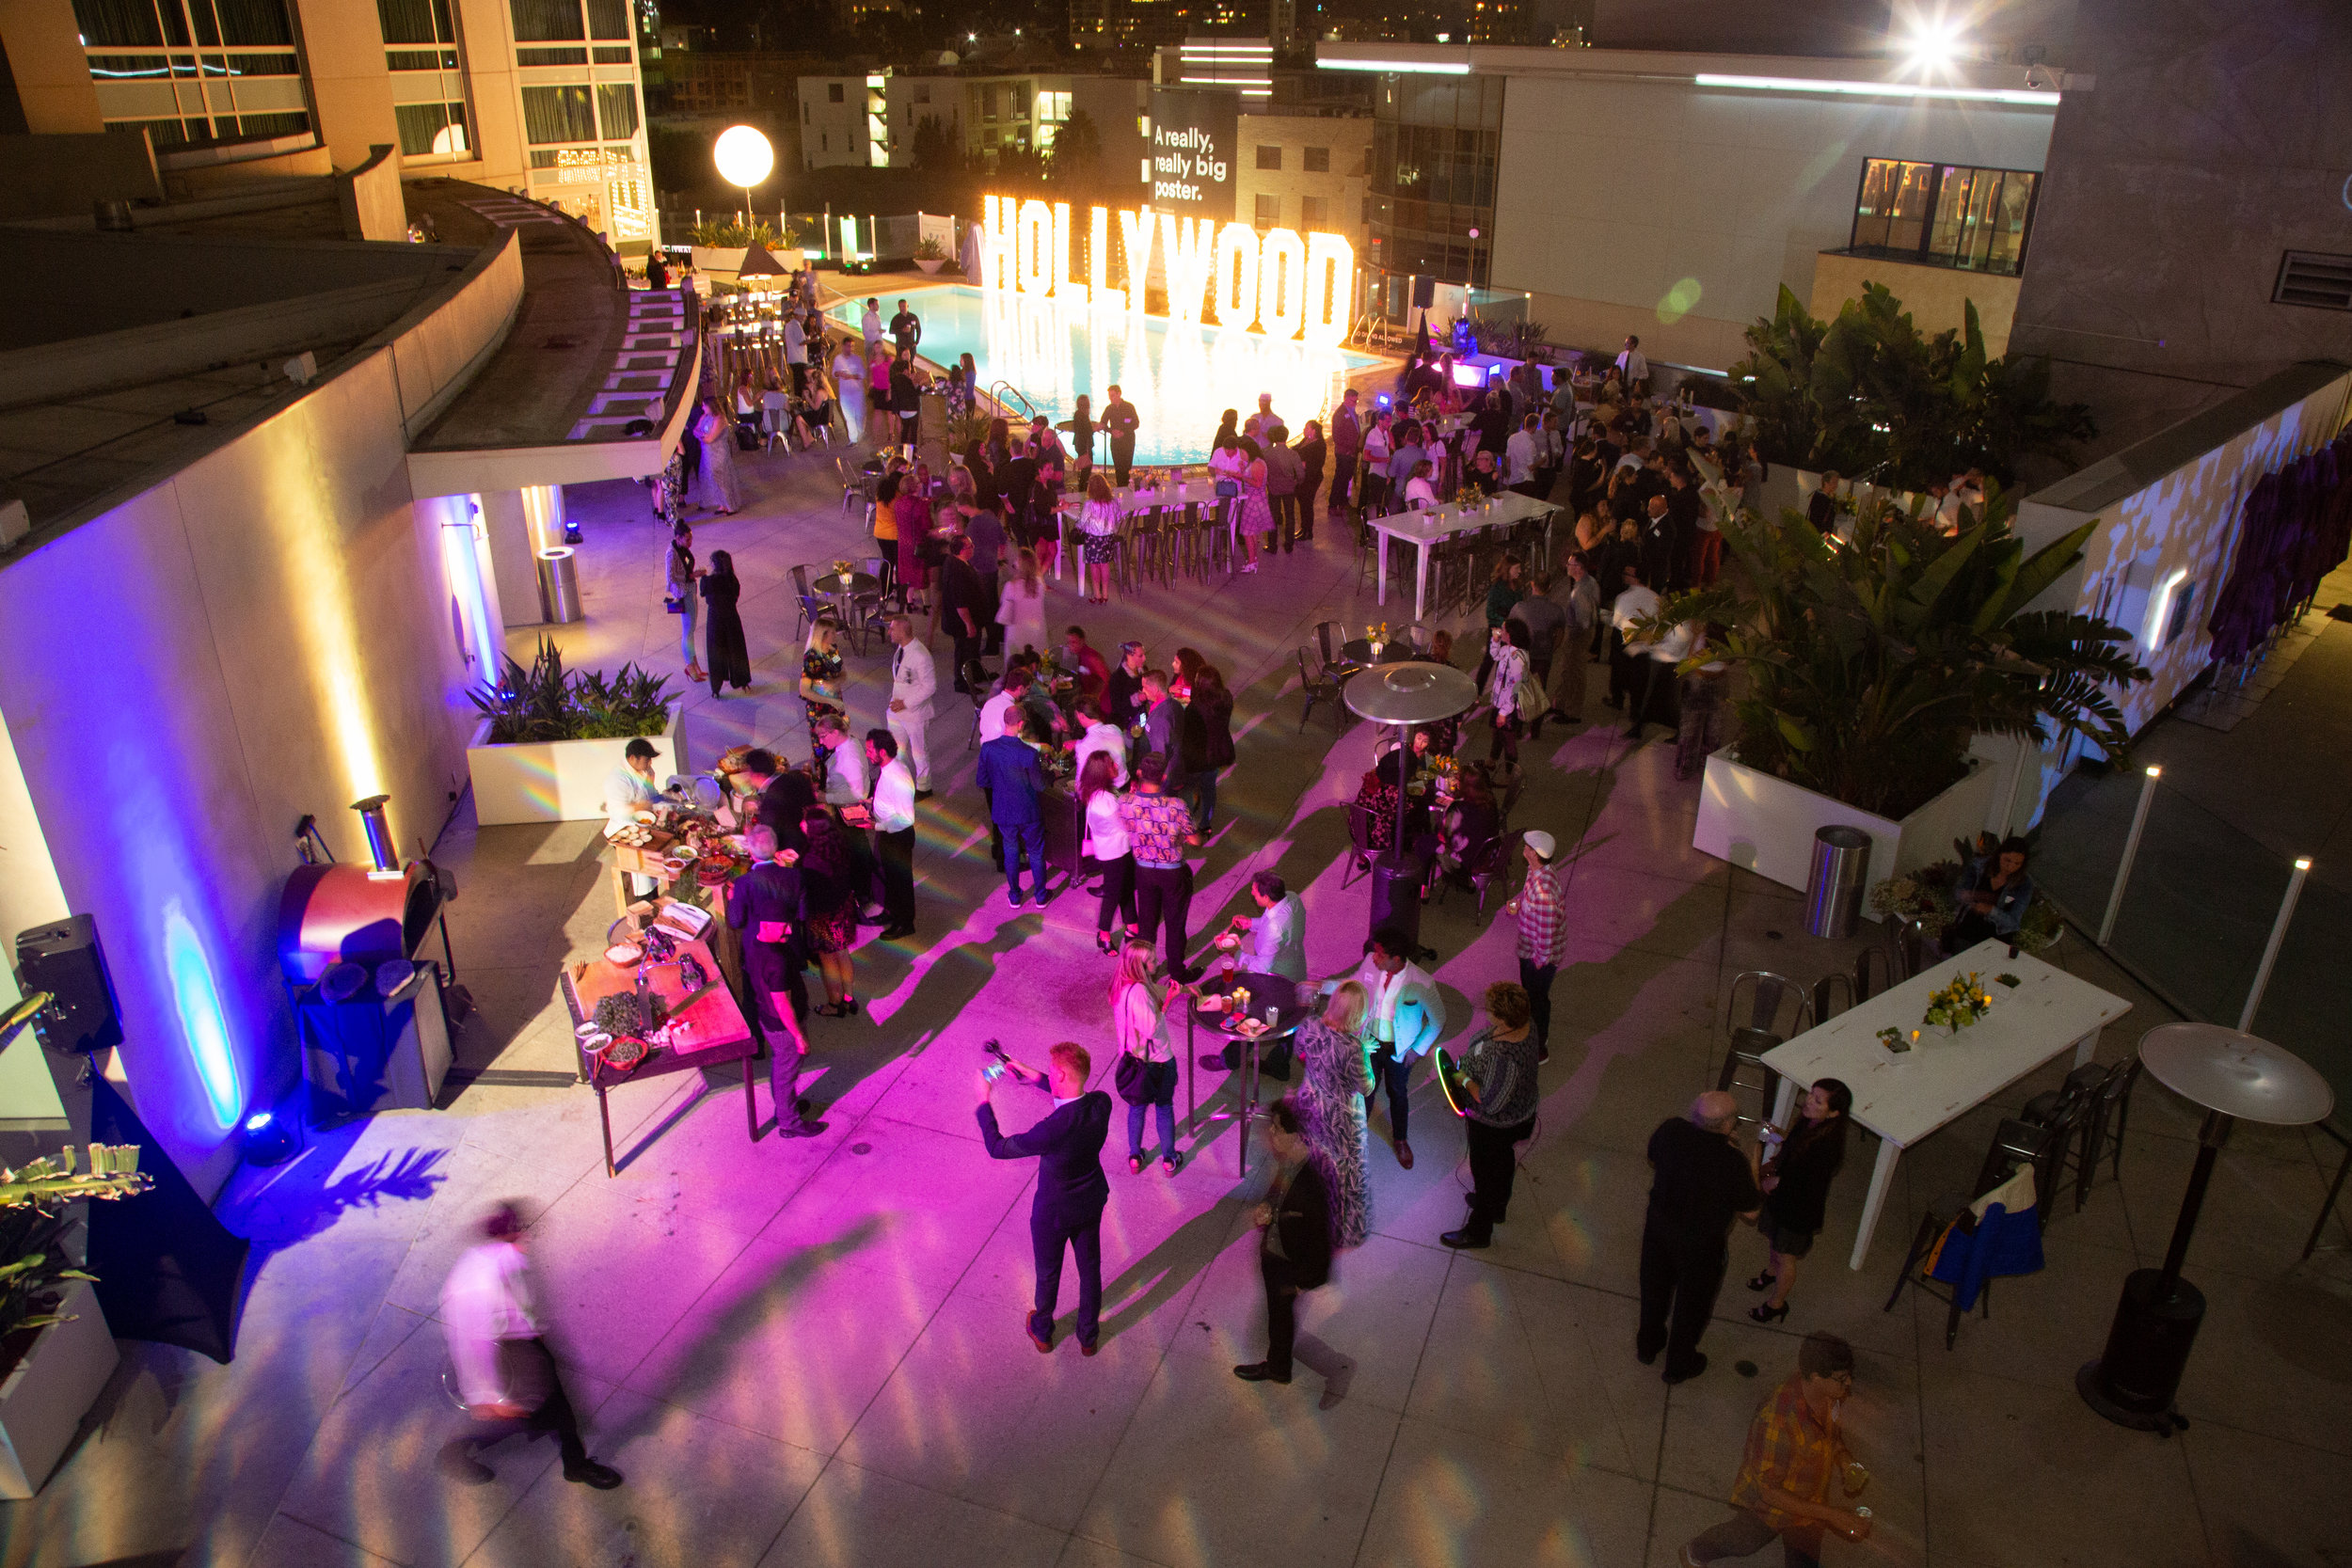 September 6, 2018 - Hosted by Hollywood & Highland, Loews Hollywood Hotel & Wolfgang Puck CateringPhotographs by JEROMY ROBERT PHOTOGRAPHYClick Here